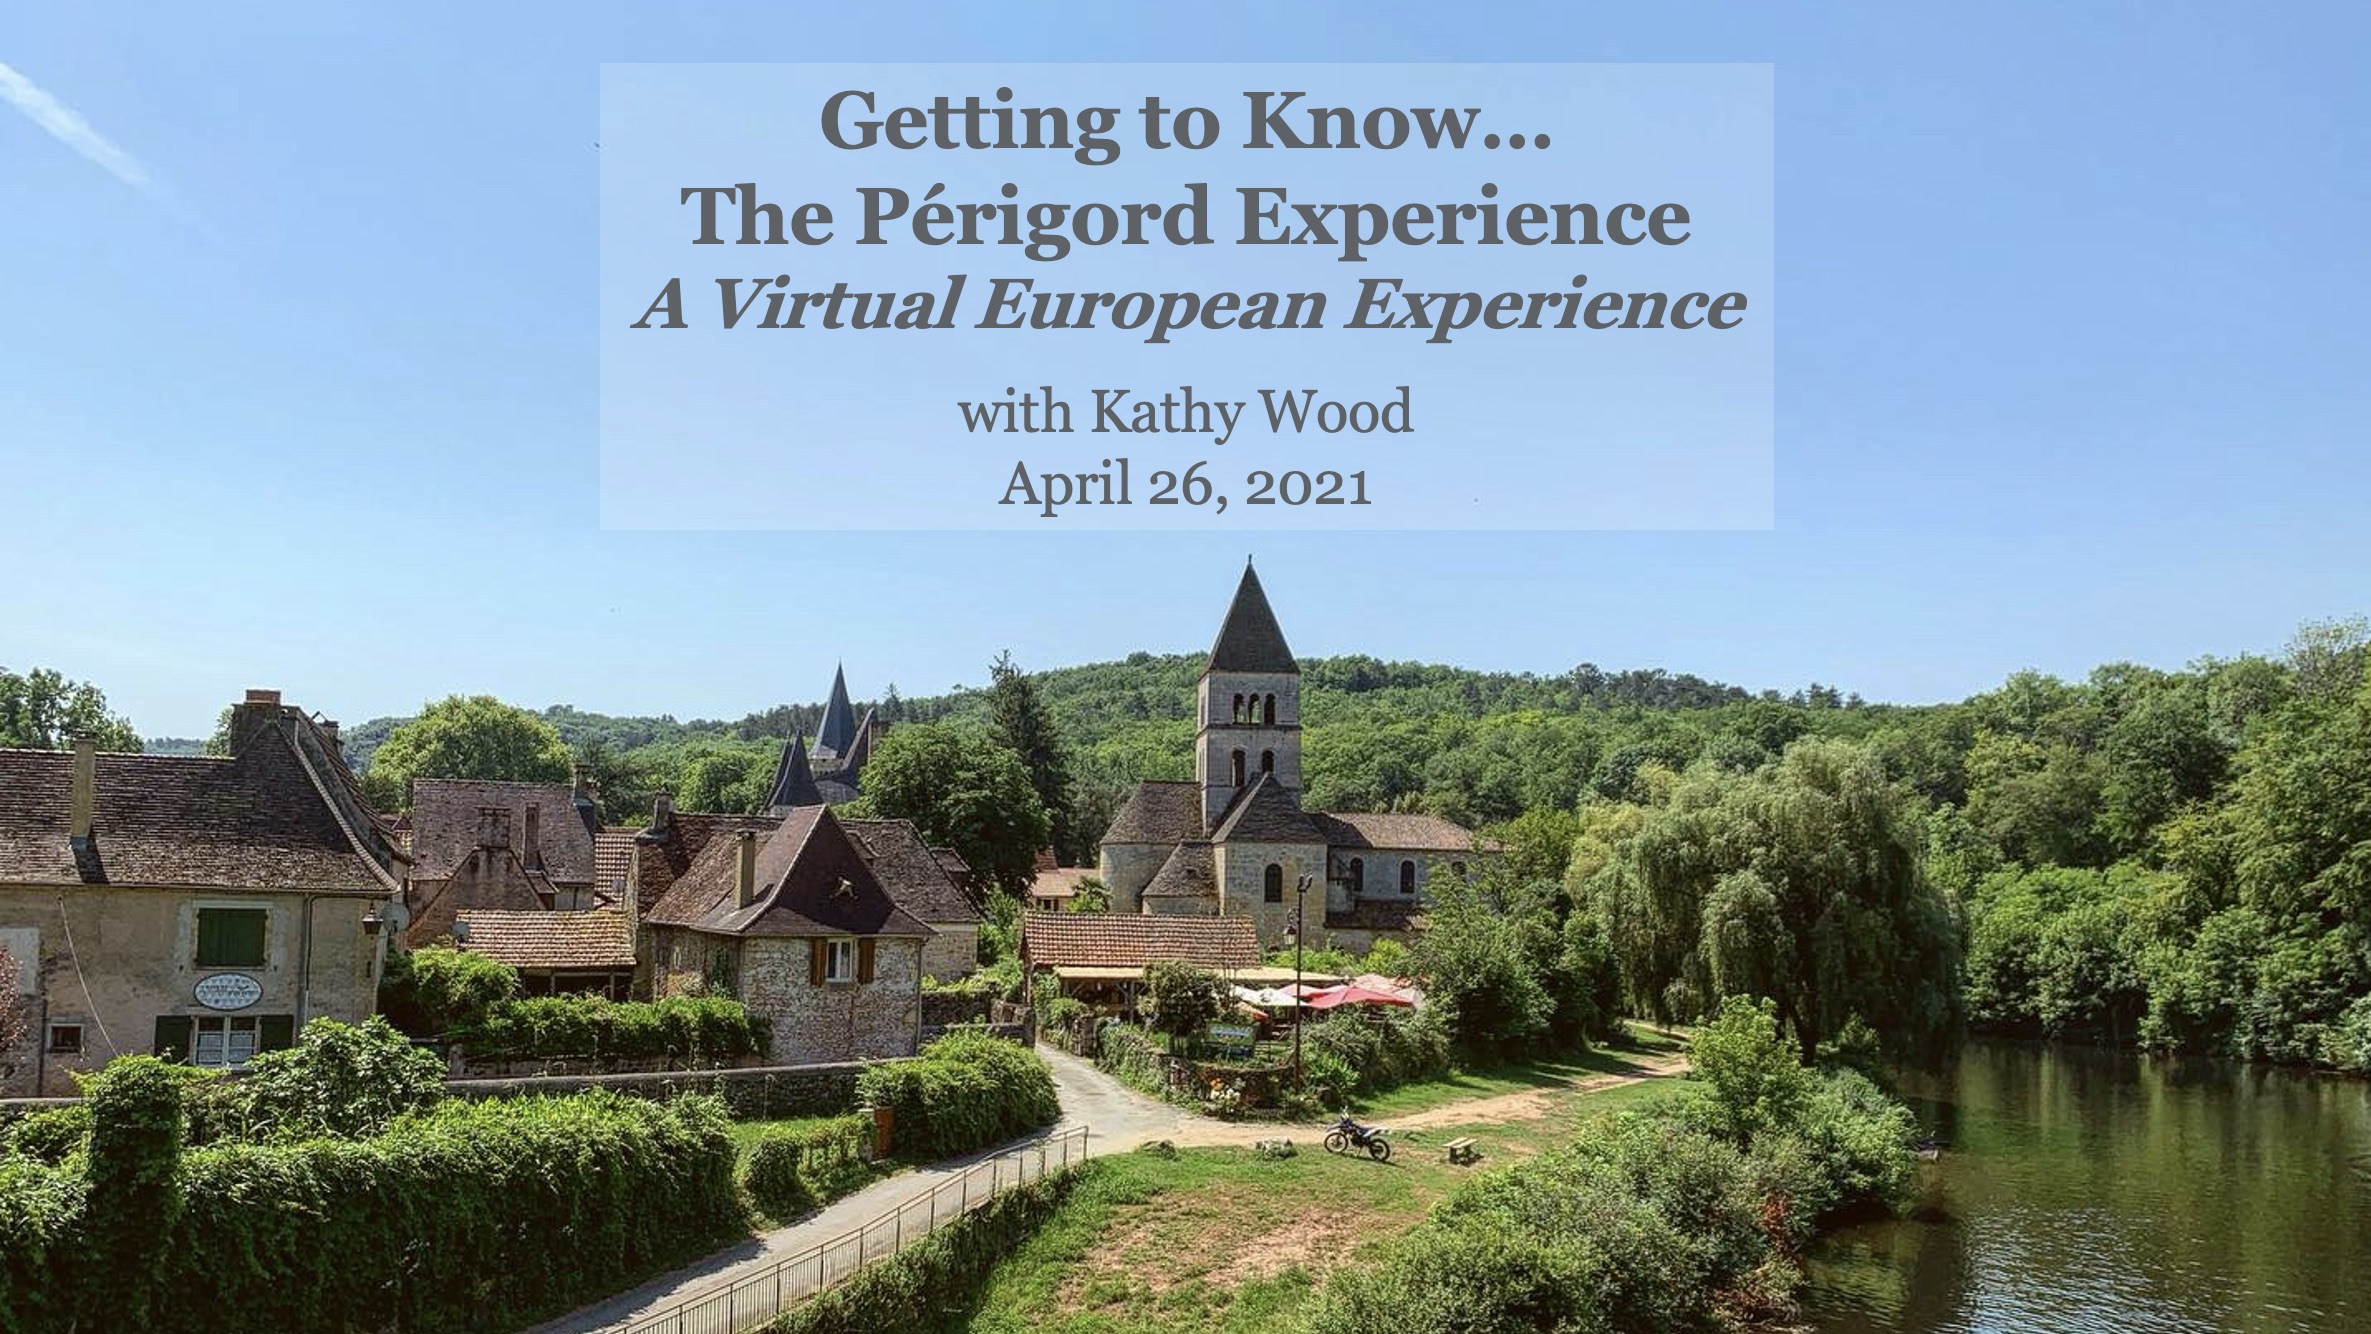 Getting to Know the Perigord